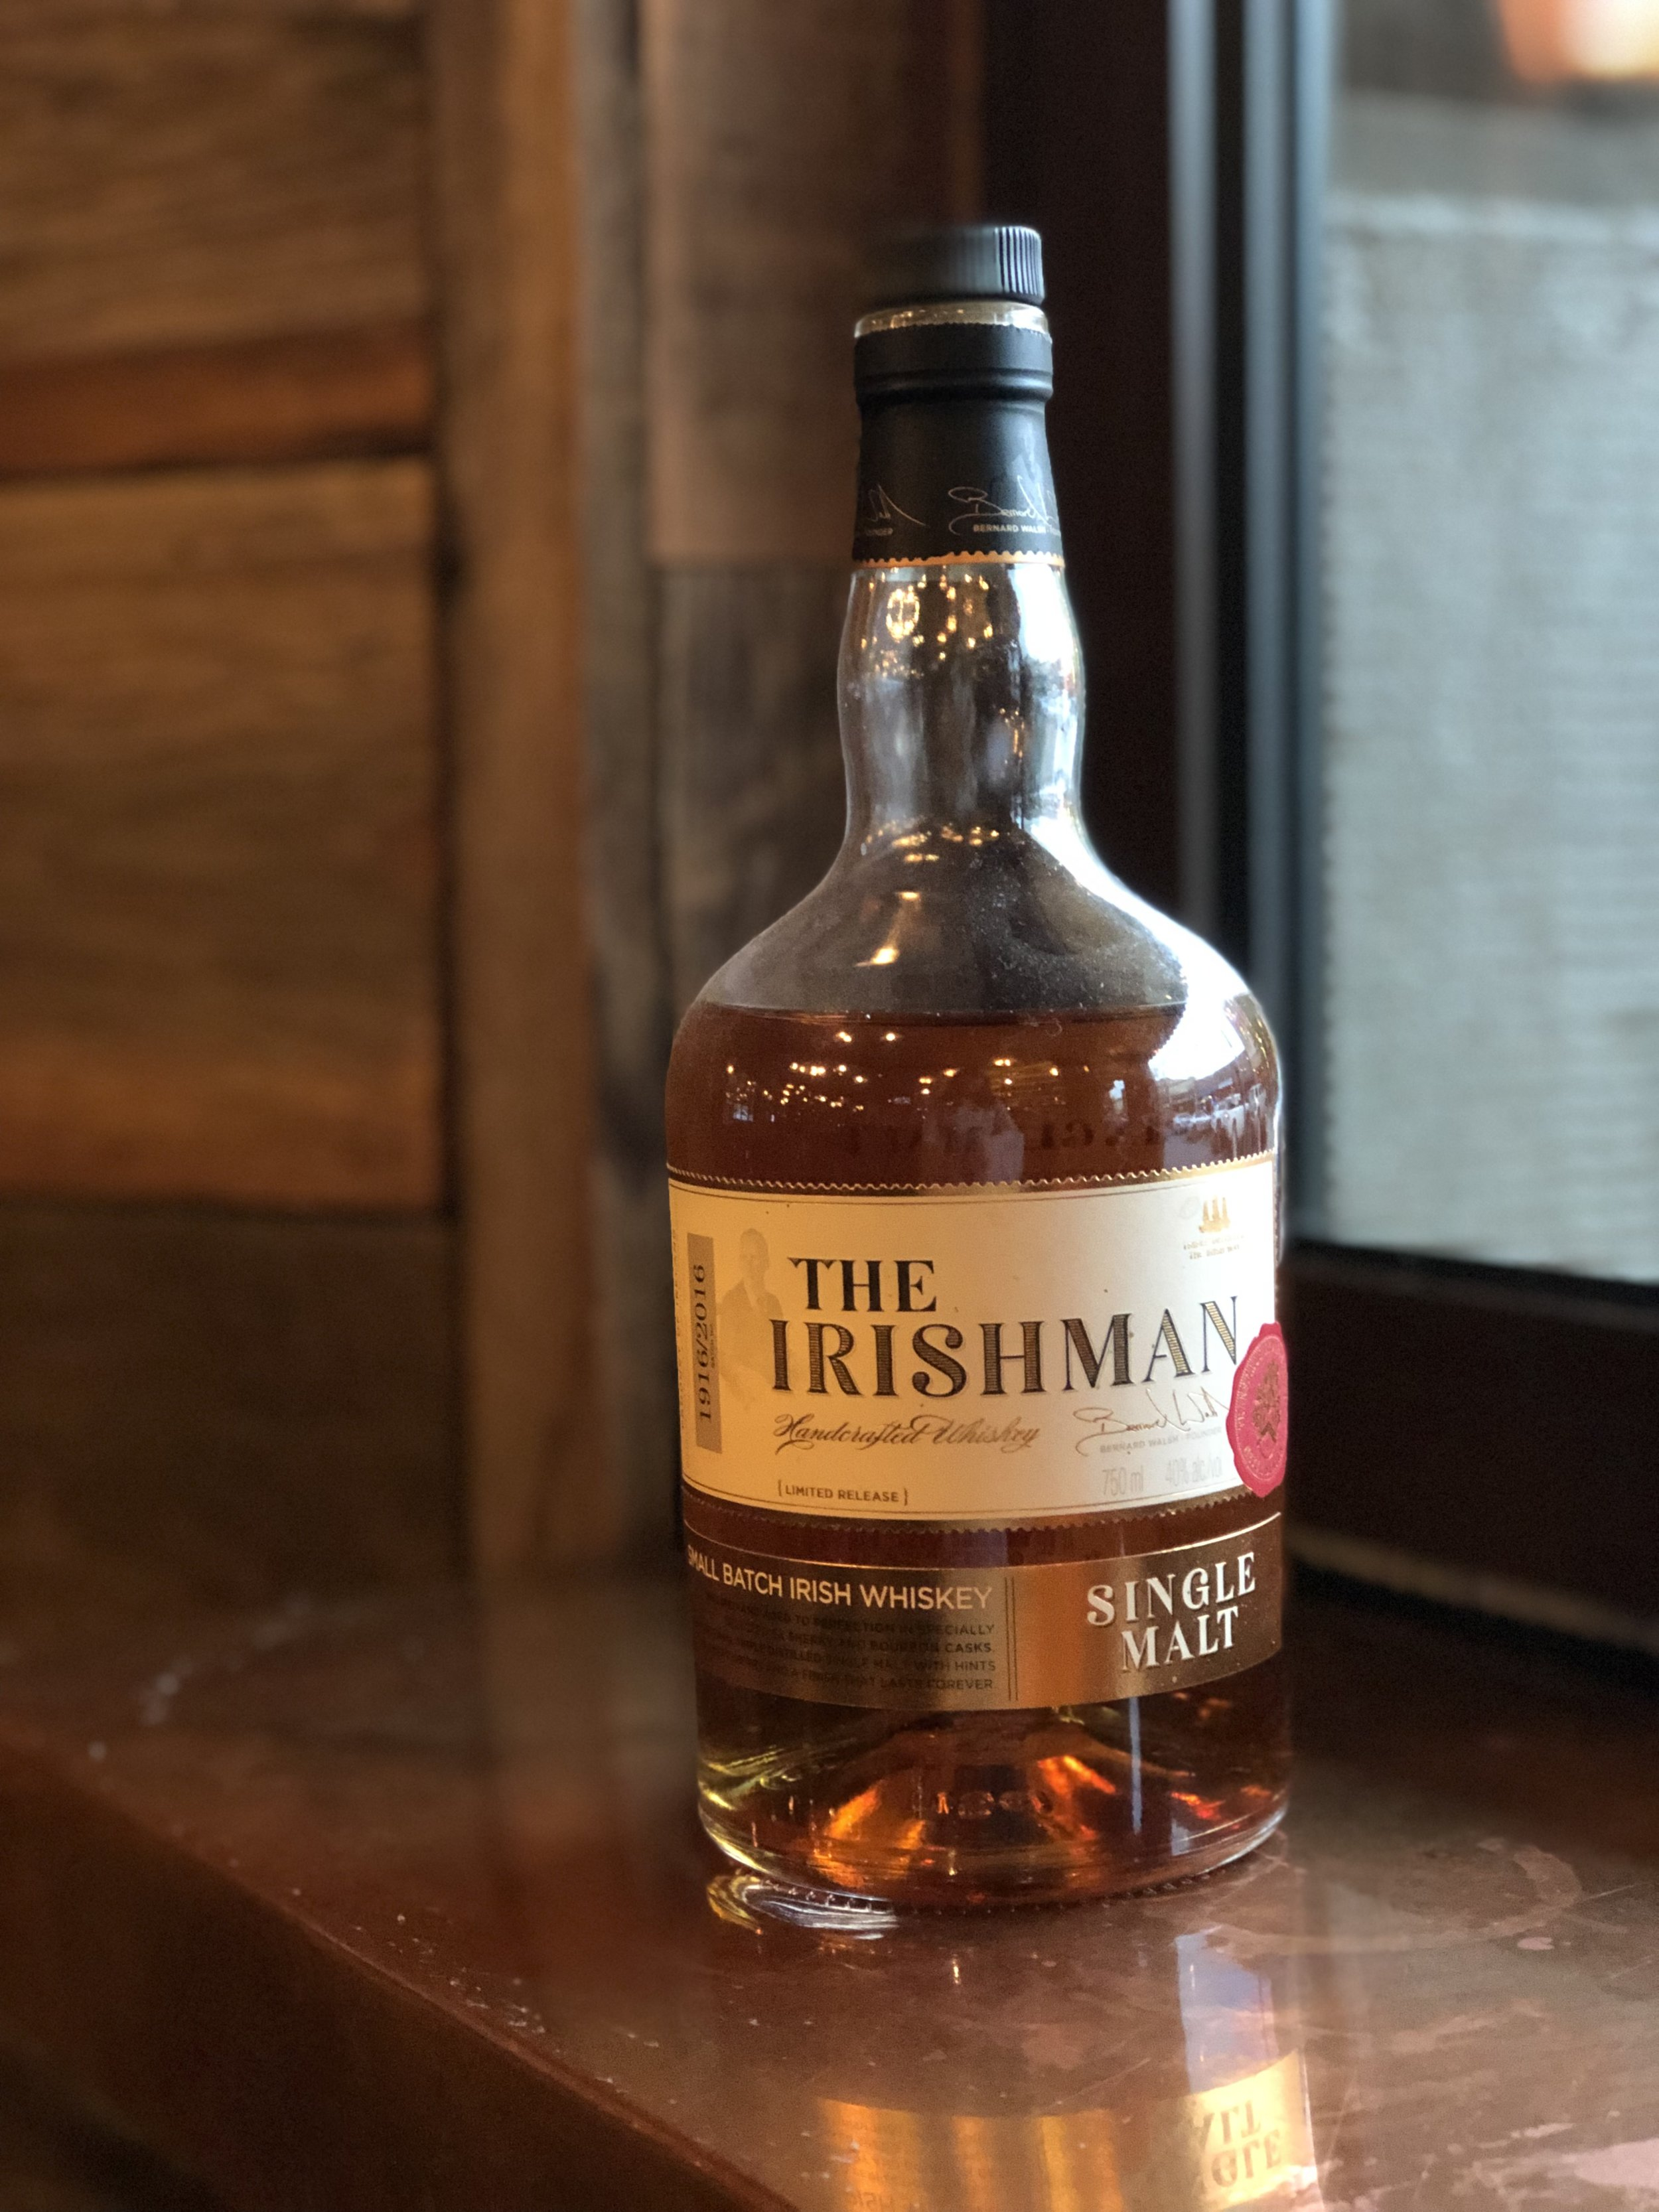 """Rain or shine, any weather can be whiskey weather. Come in to Beer Baron this Whiskey Wednesday and try The Irishman Single Malt. . """"This Irishman Single Malt is one of only a handful of Irish triple distilled single malts on the market. This is a classic Irish Malt, triple distilled and aged in Oak Bourbon and Oloroso Sherry Casks to give exceptional flavour and complexity. Each batch is limited to a maximum of 6,000 bottles. The Irishman Single Malt boasts an impressive medal haul both in Europe and the USA for its outstanding quality. None more so than a Double Gold Medal """"The World Spirits Competition"""" in San Francisco and its Gold Medal in ISW Germany. Each bottle carries a batch number and signature as a mark of the highest quality."""" - Walsh Whiskey Distillery . Every Wednesday Beer Baron offers 50% off all whiskey $10/oz and under. Cheers!"""